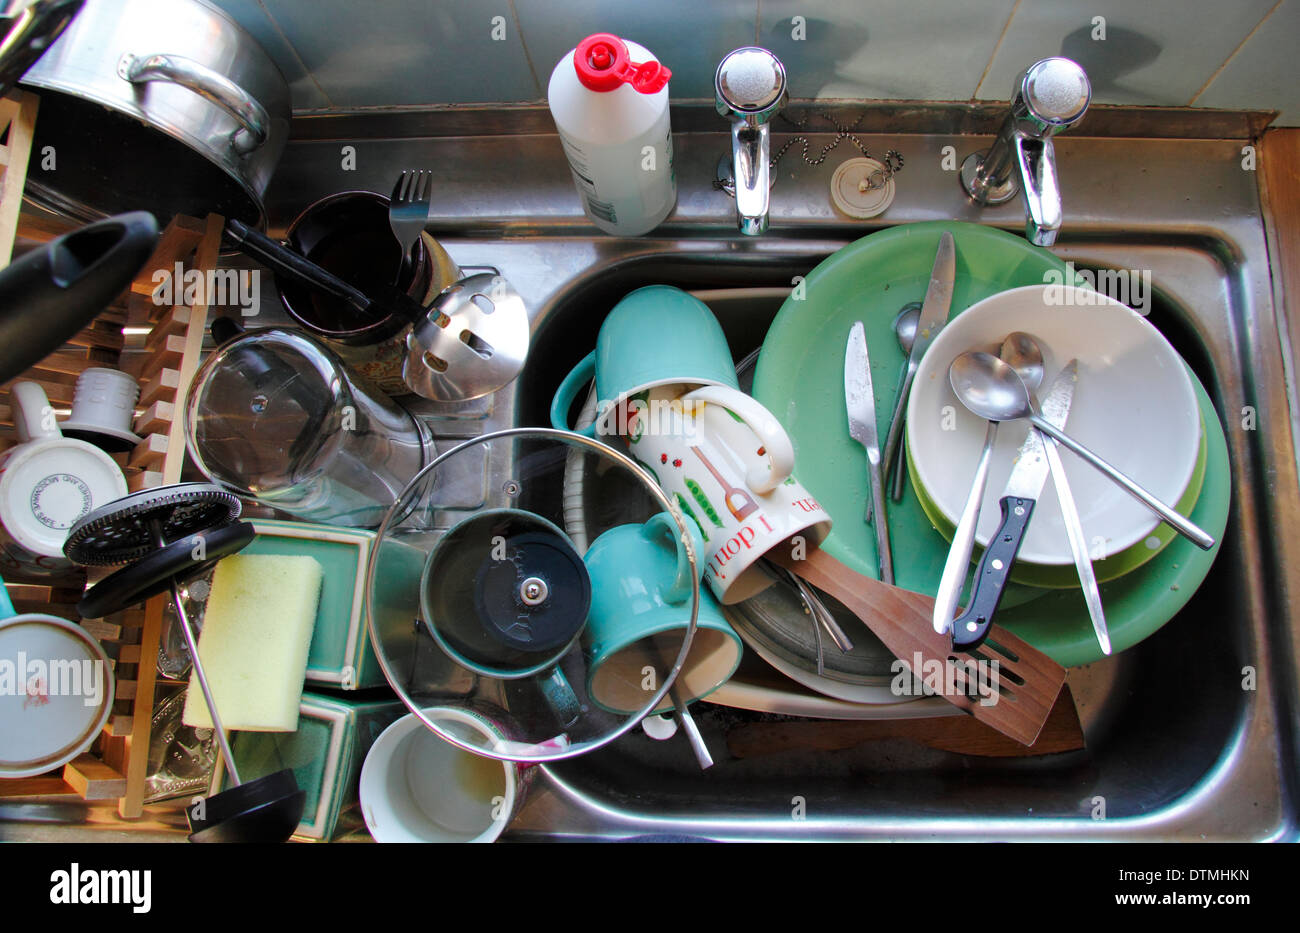 Kitchn sink stacked with dirty pots, England, UK - Stock Image